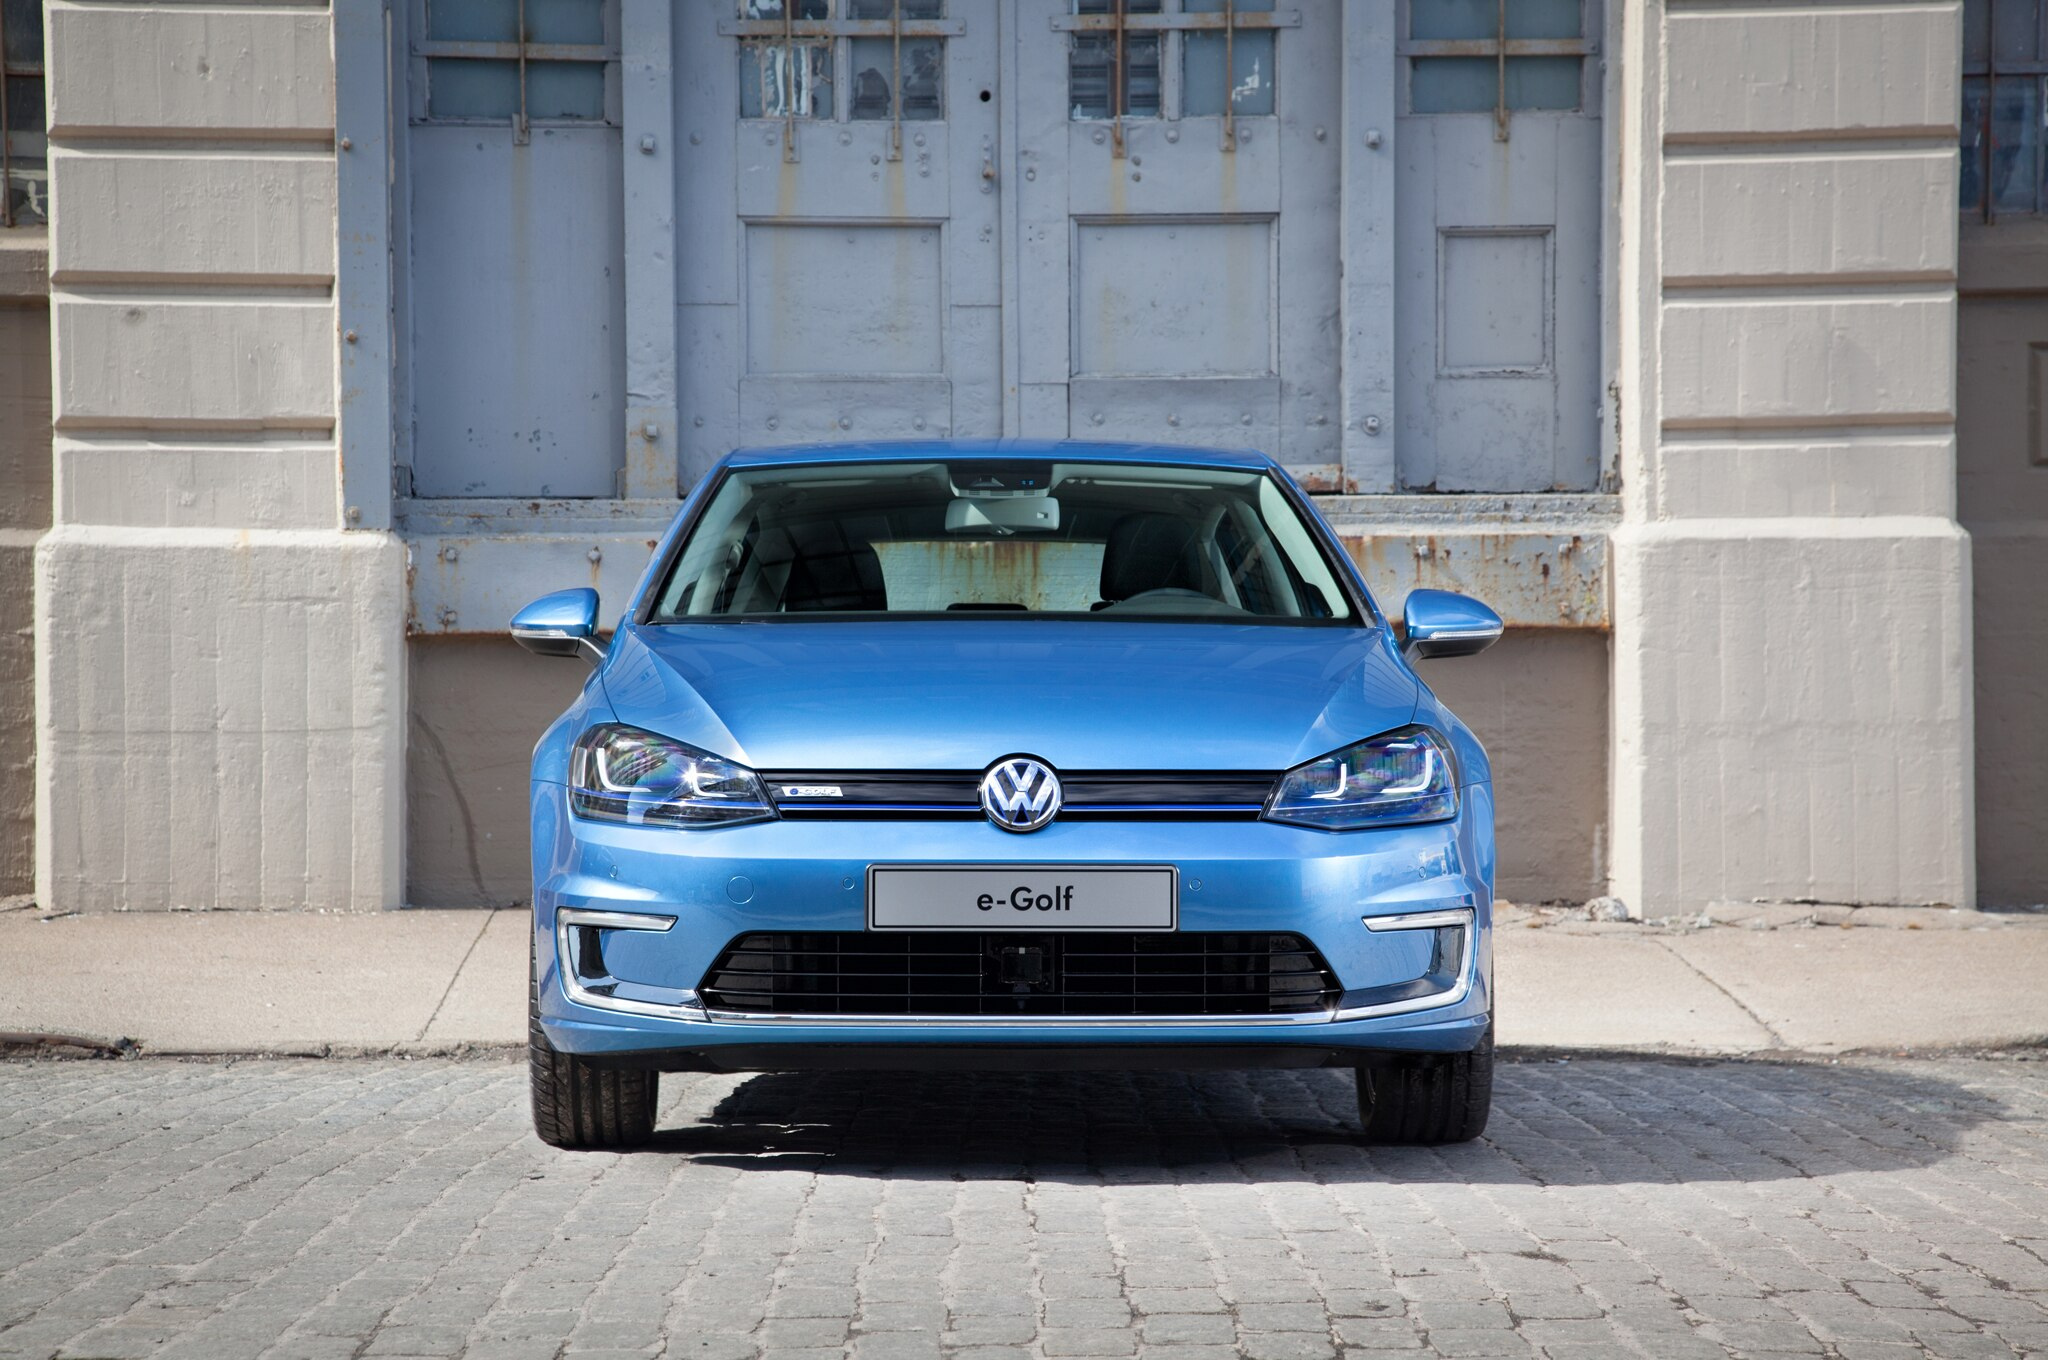 2015 Volkswagen E Golf Front End1